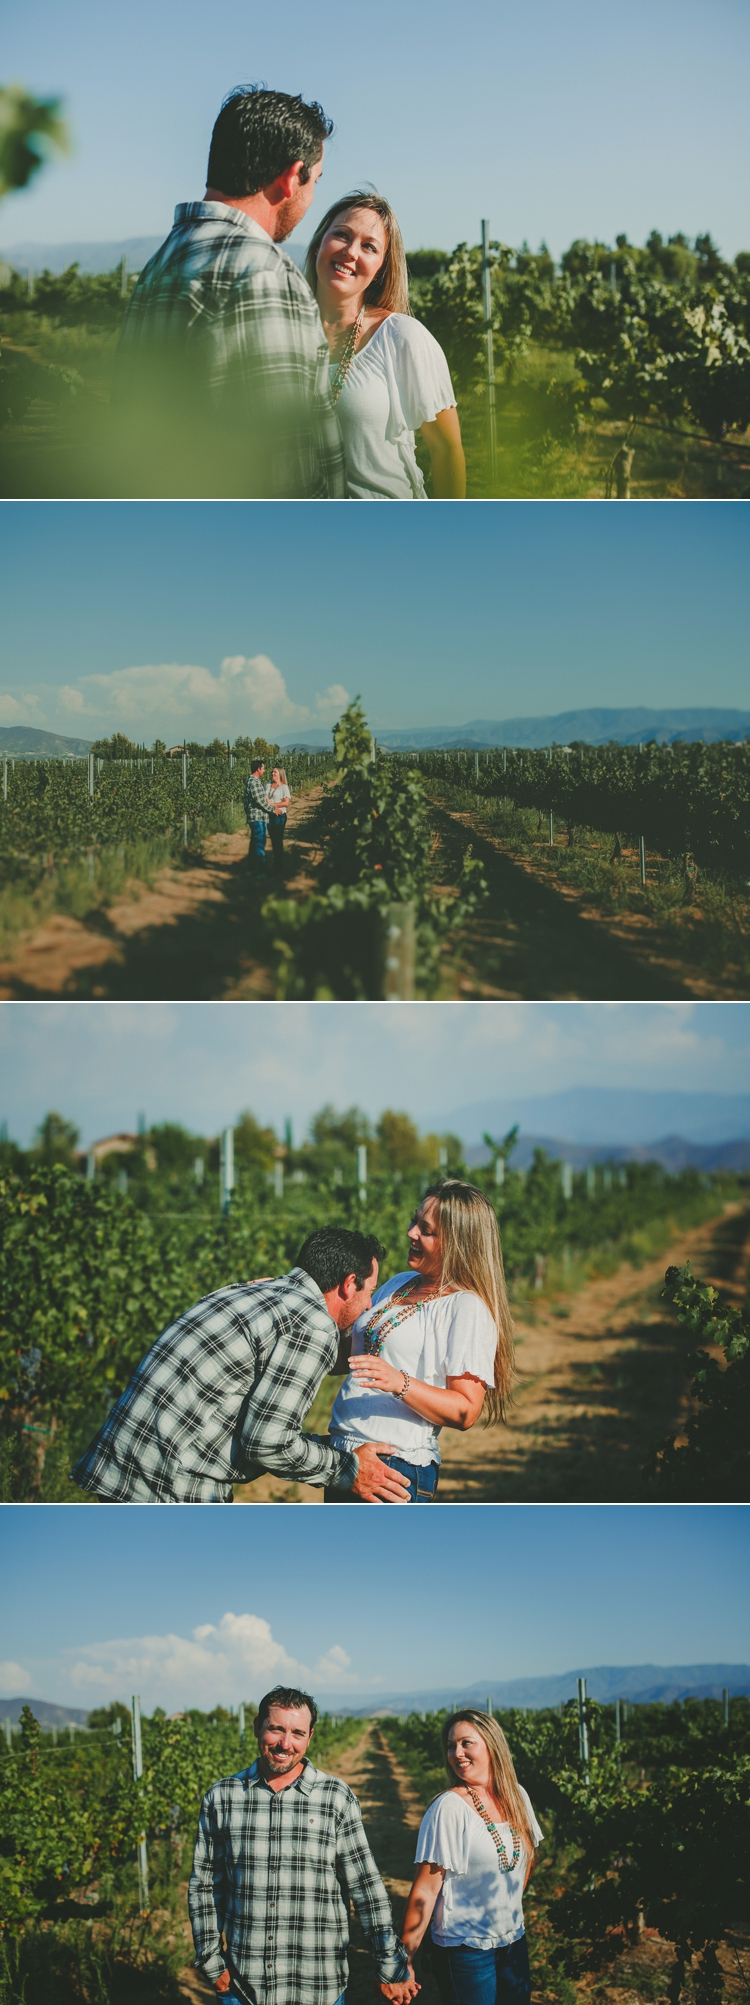 Wedding Proposal In Temecula